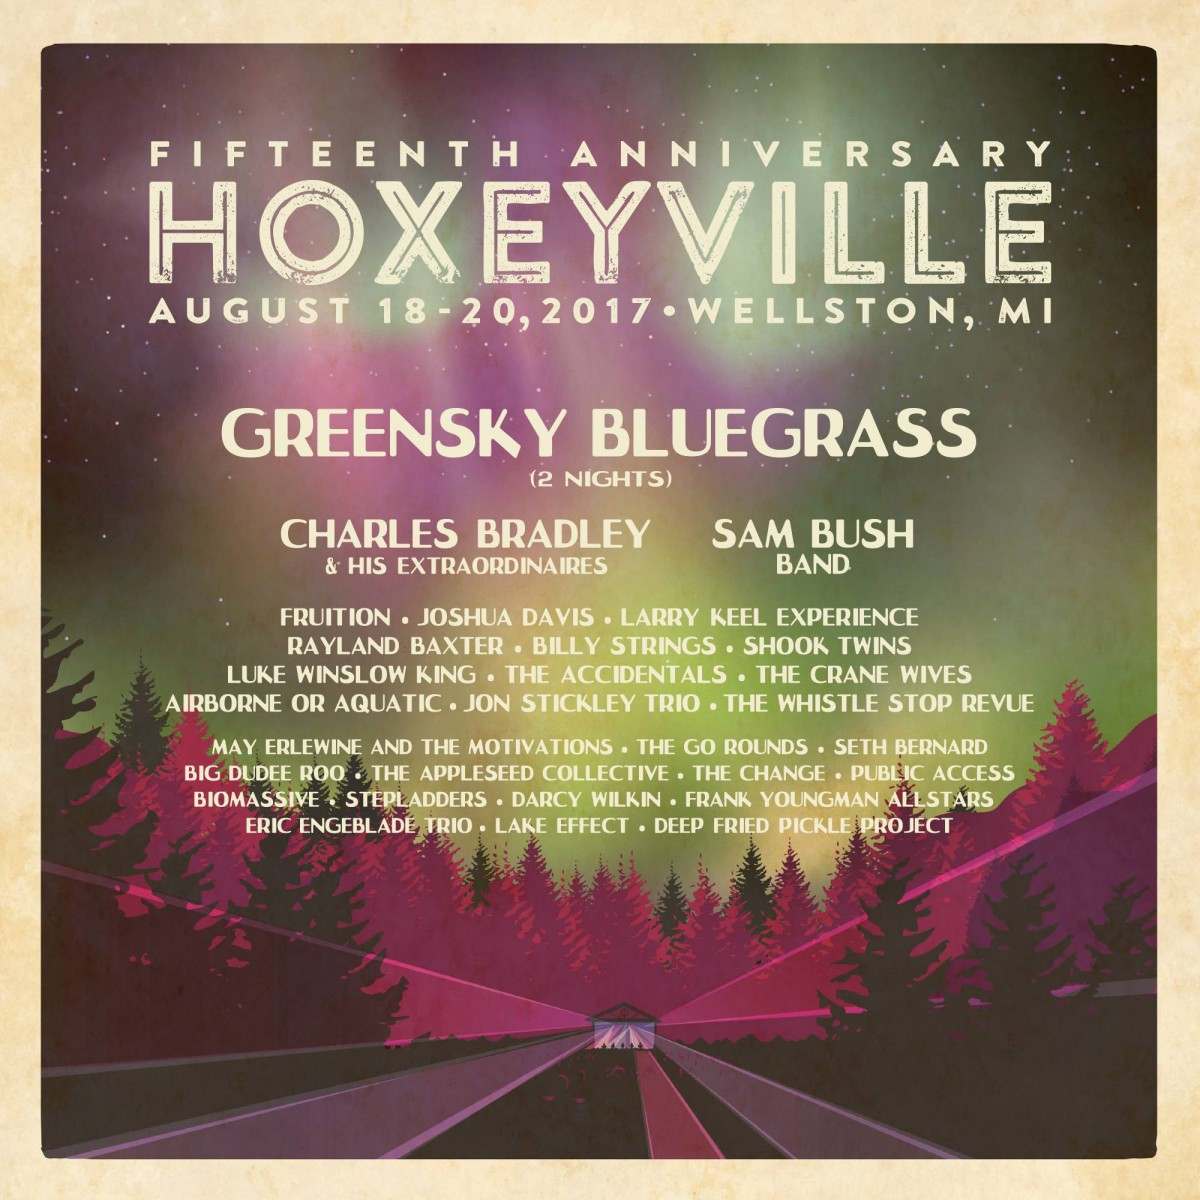 15th Annual Hoxeyville Music Festival Lineup Announcement: Greensky x2, Charles Bradley, Sam Bush Band, Larry Keel Experience & More